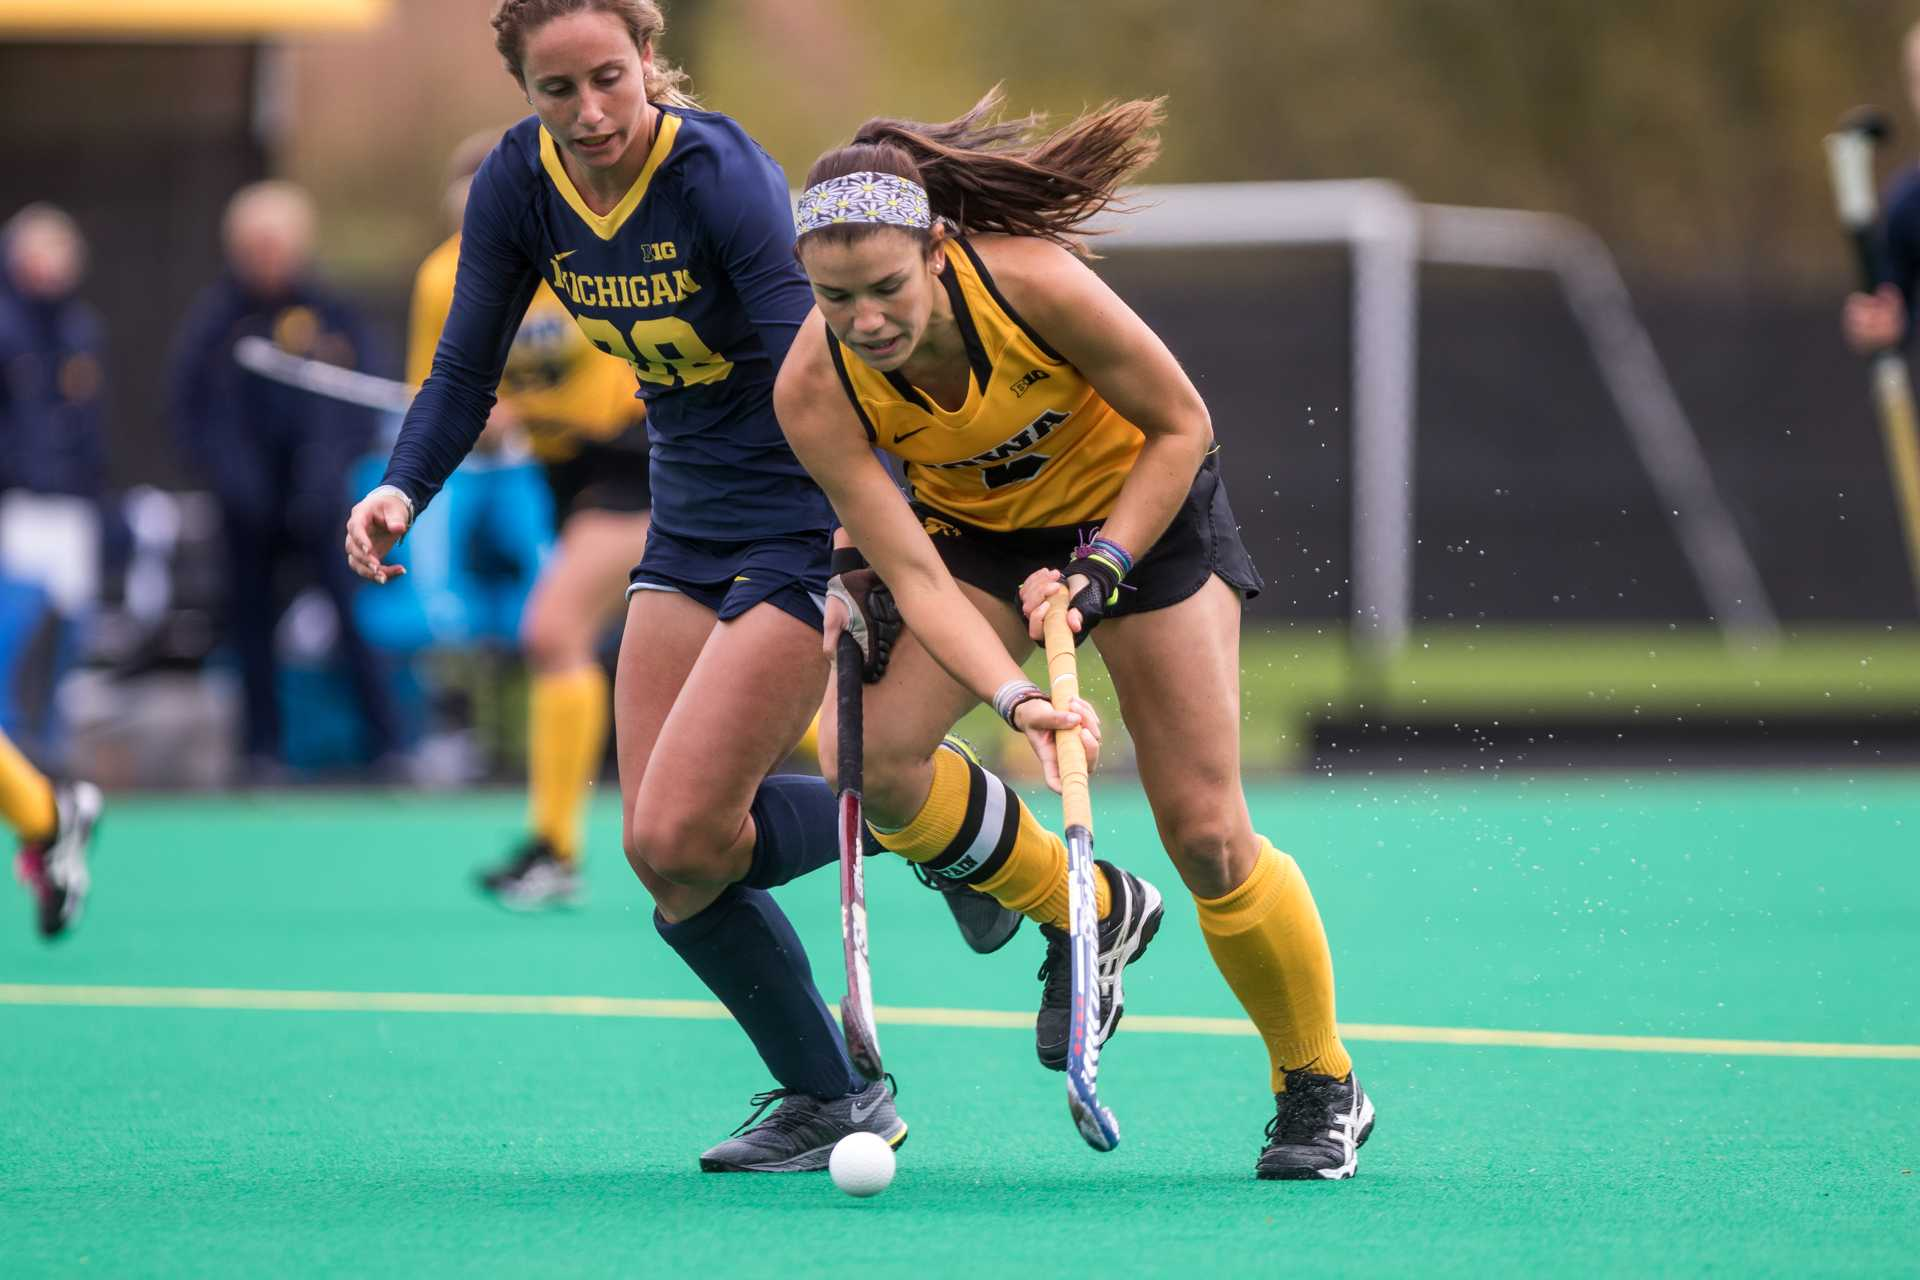 Iowa field hockey player Mallory Lefkowitz fights for the ball during a match against the Michigan Wolverines on Sunday, Oct. 15, 2017.  The Wolverines defeated the Hawkeyes 3-2.